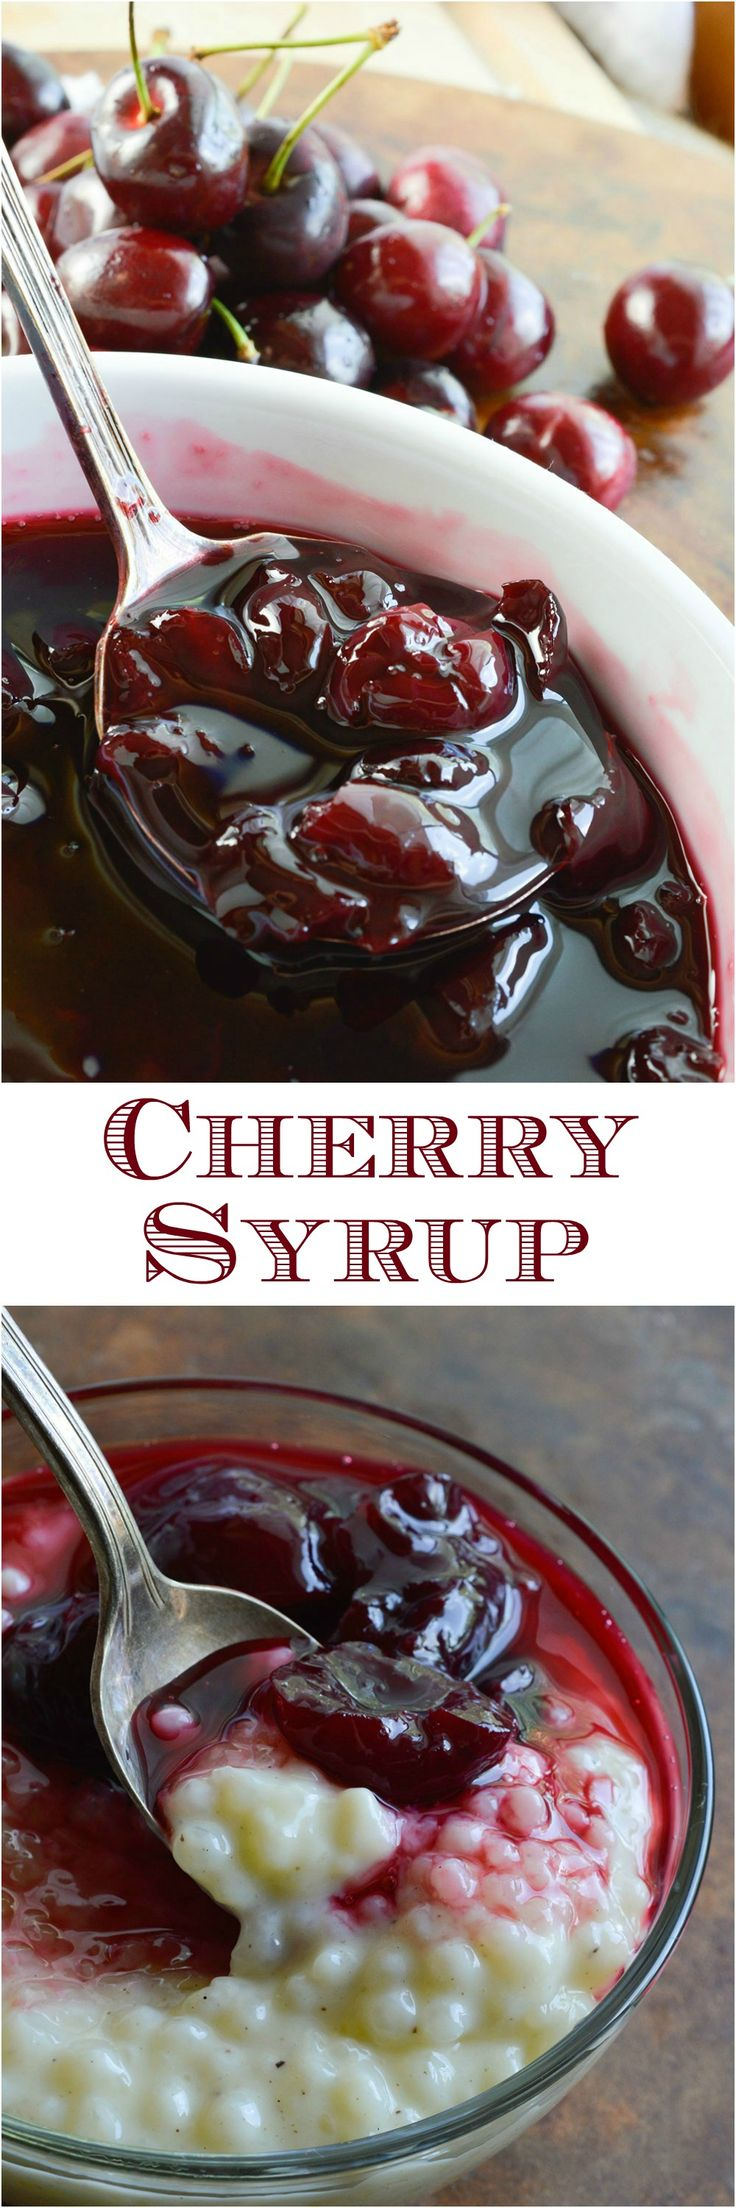 This Cherry Syrup Recipe makes a great homemade sauce for just about any dessert! Serve with breakfast pancakes, over yogurt or as an ice cream topping. The possibilities are endless! #cherry wonkywonderful.com